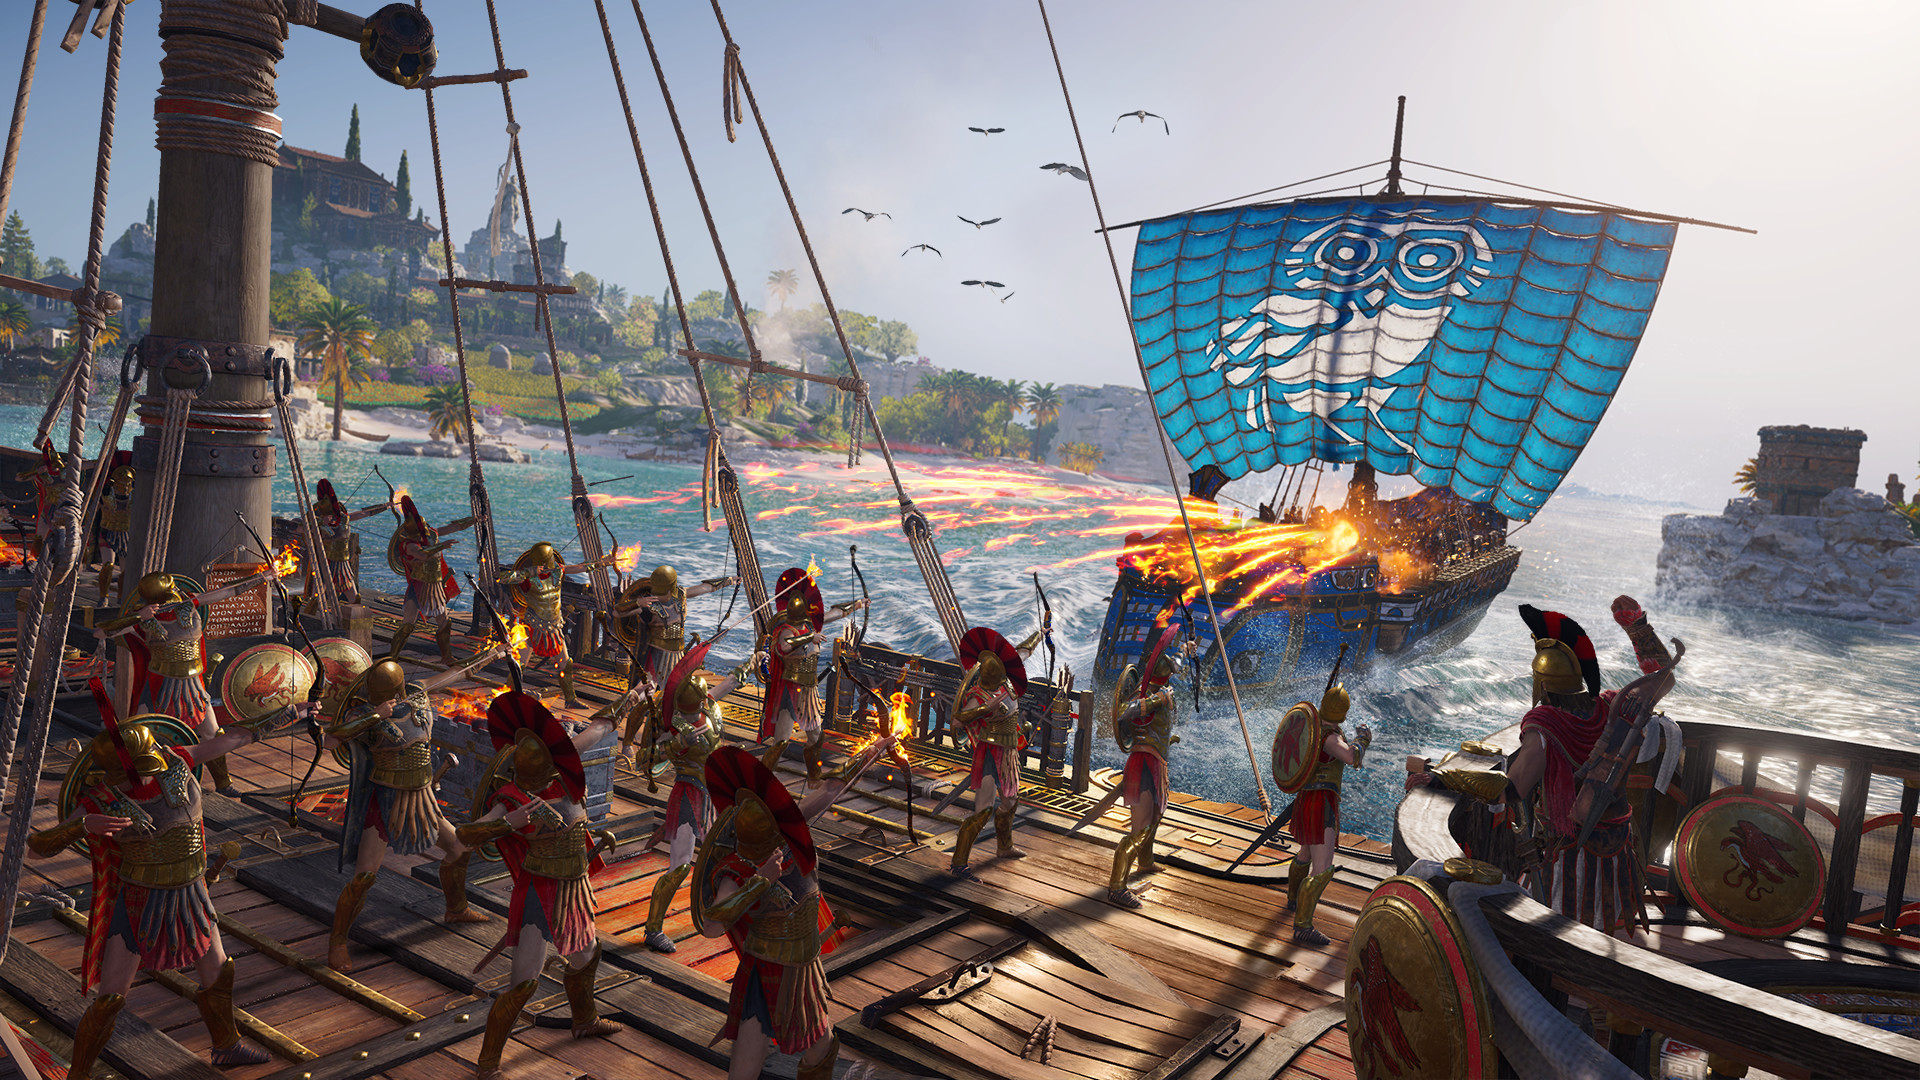 Link Tải Game Assassin's Creed Odyssey Miễn Phí